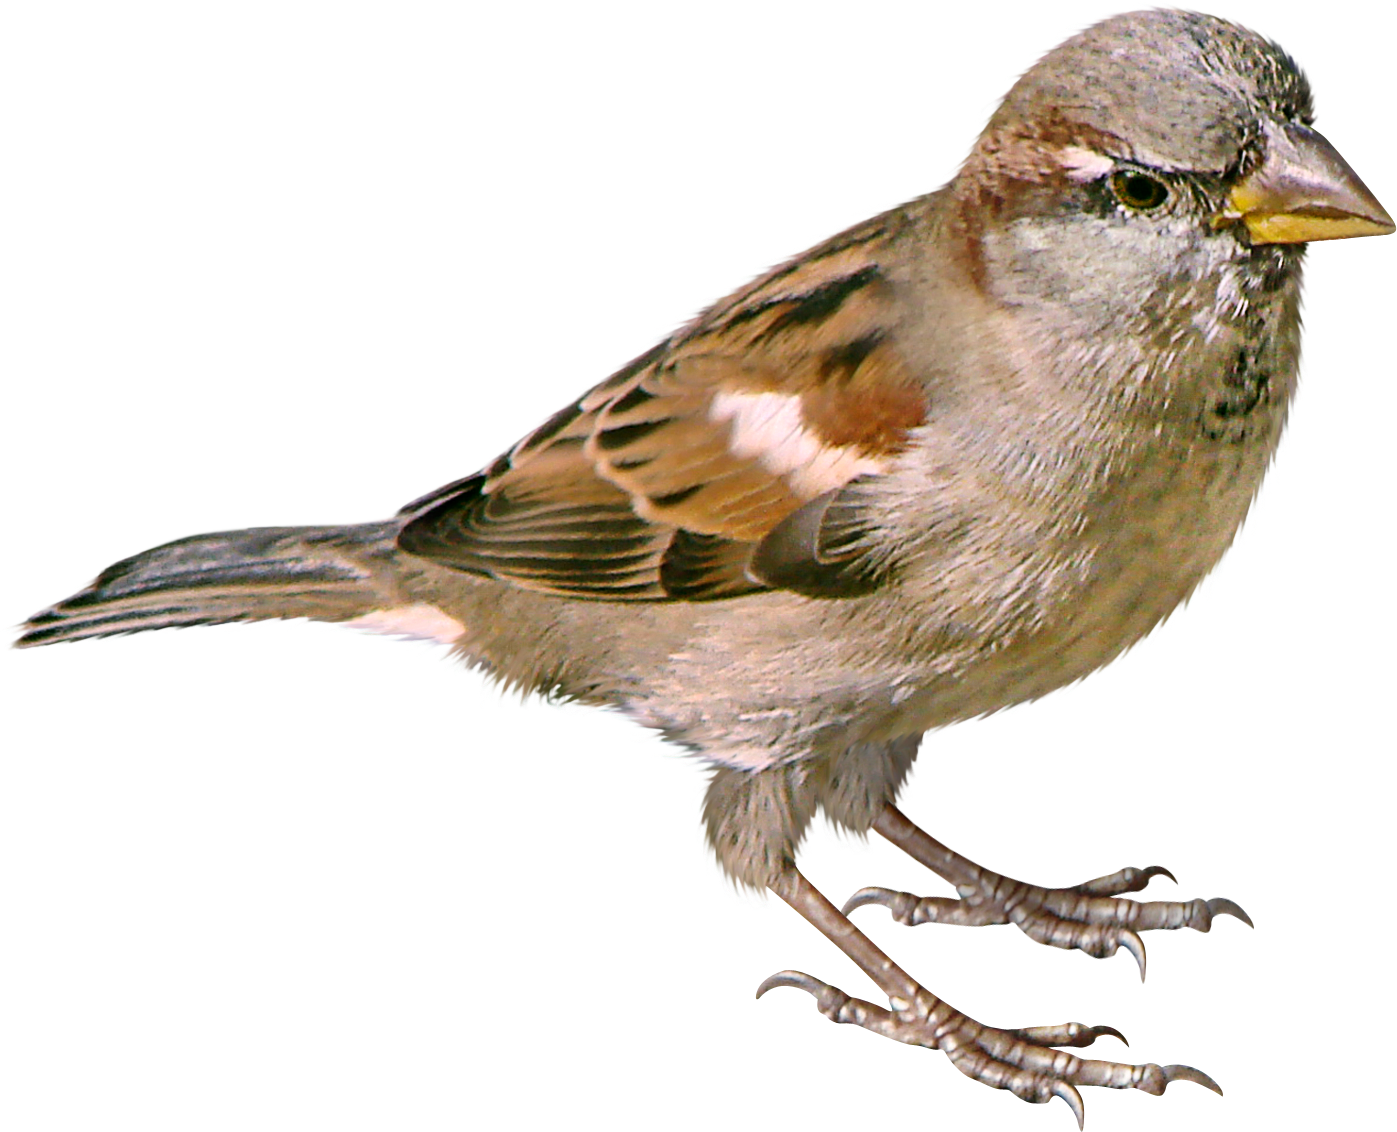 Sparrow PNG - 2969